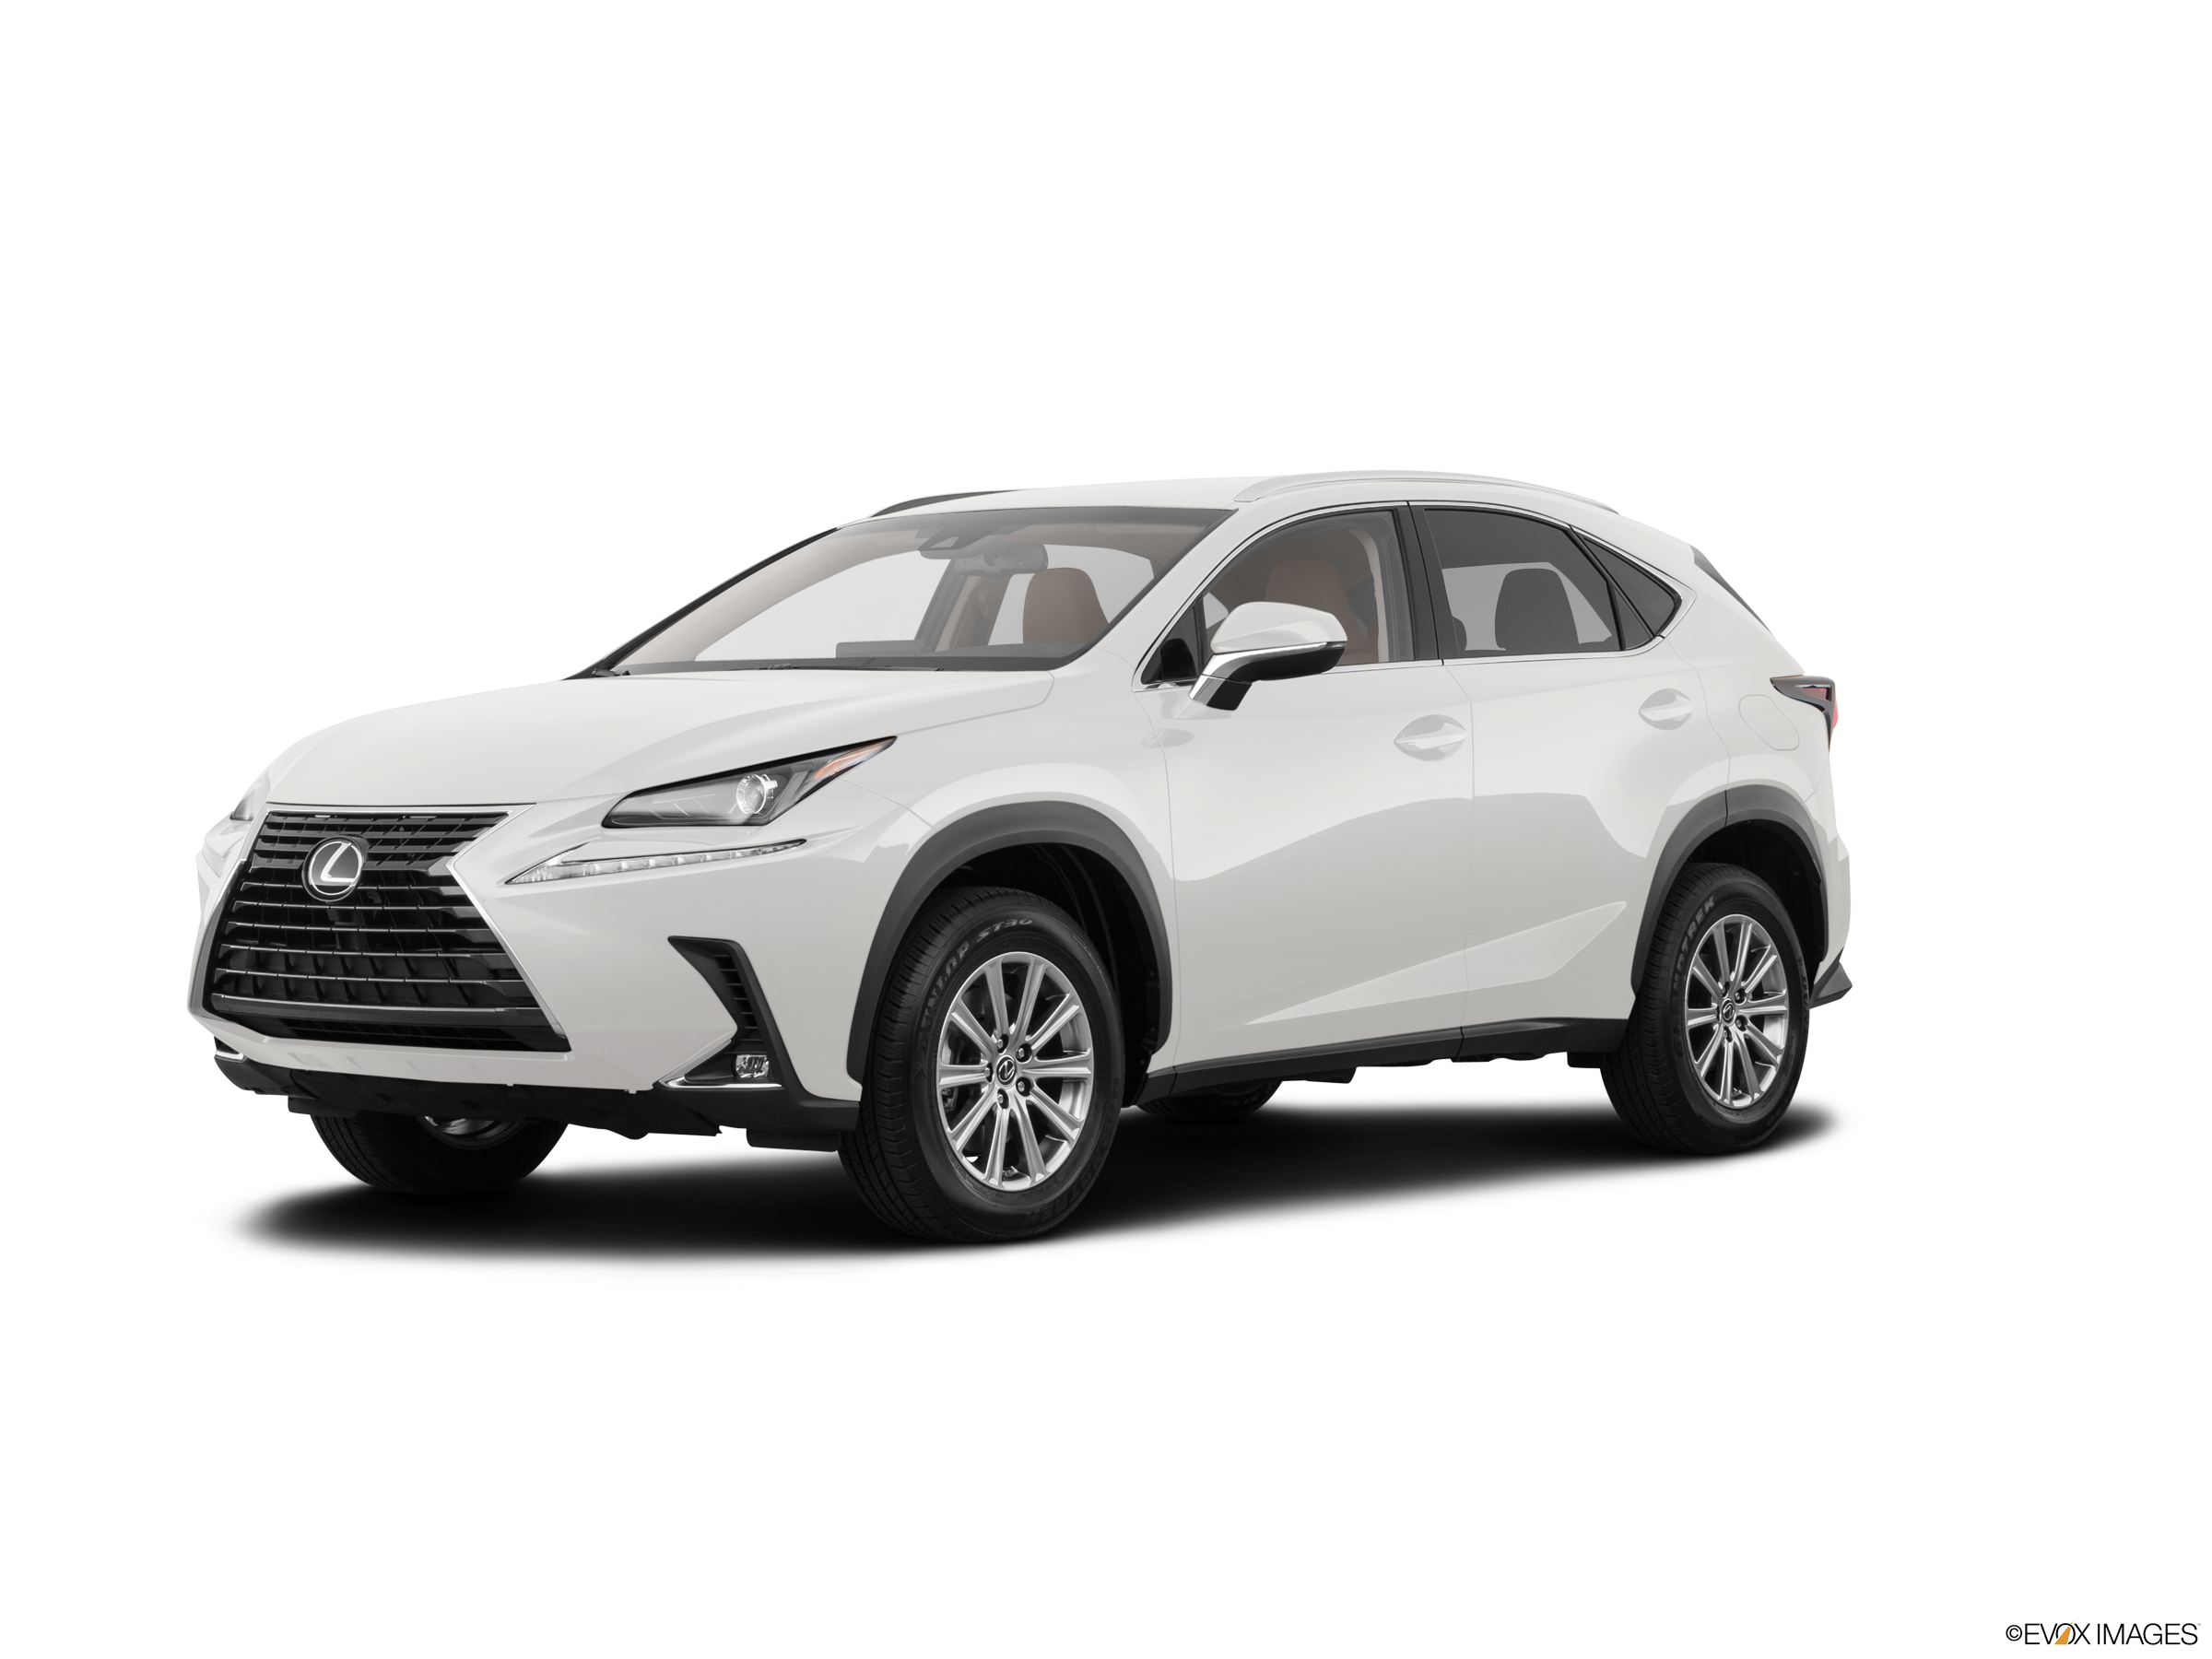 10 Best Luxury Cars Under $35,000 - 2018 Lexus NX